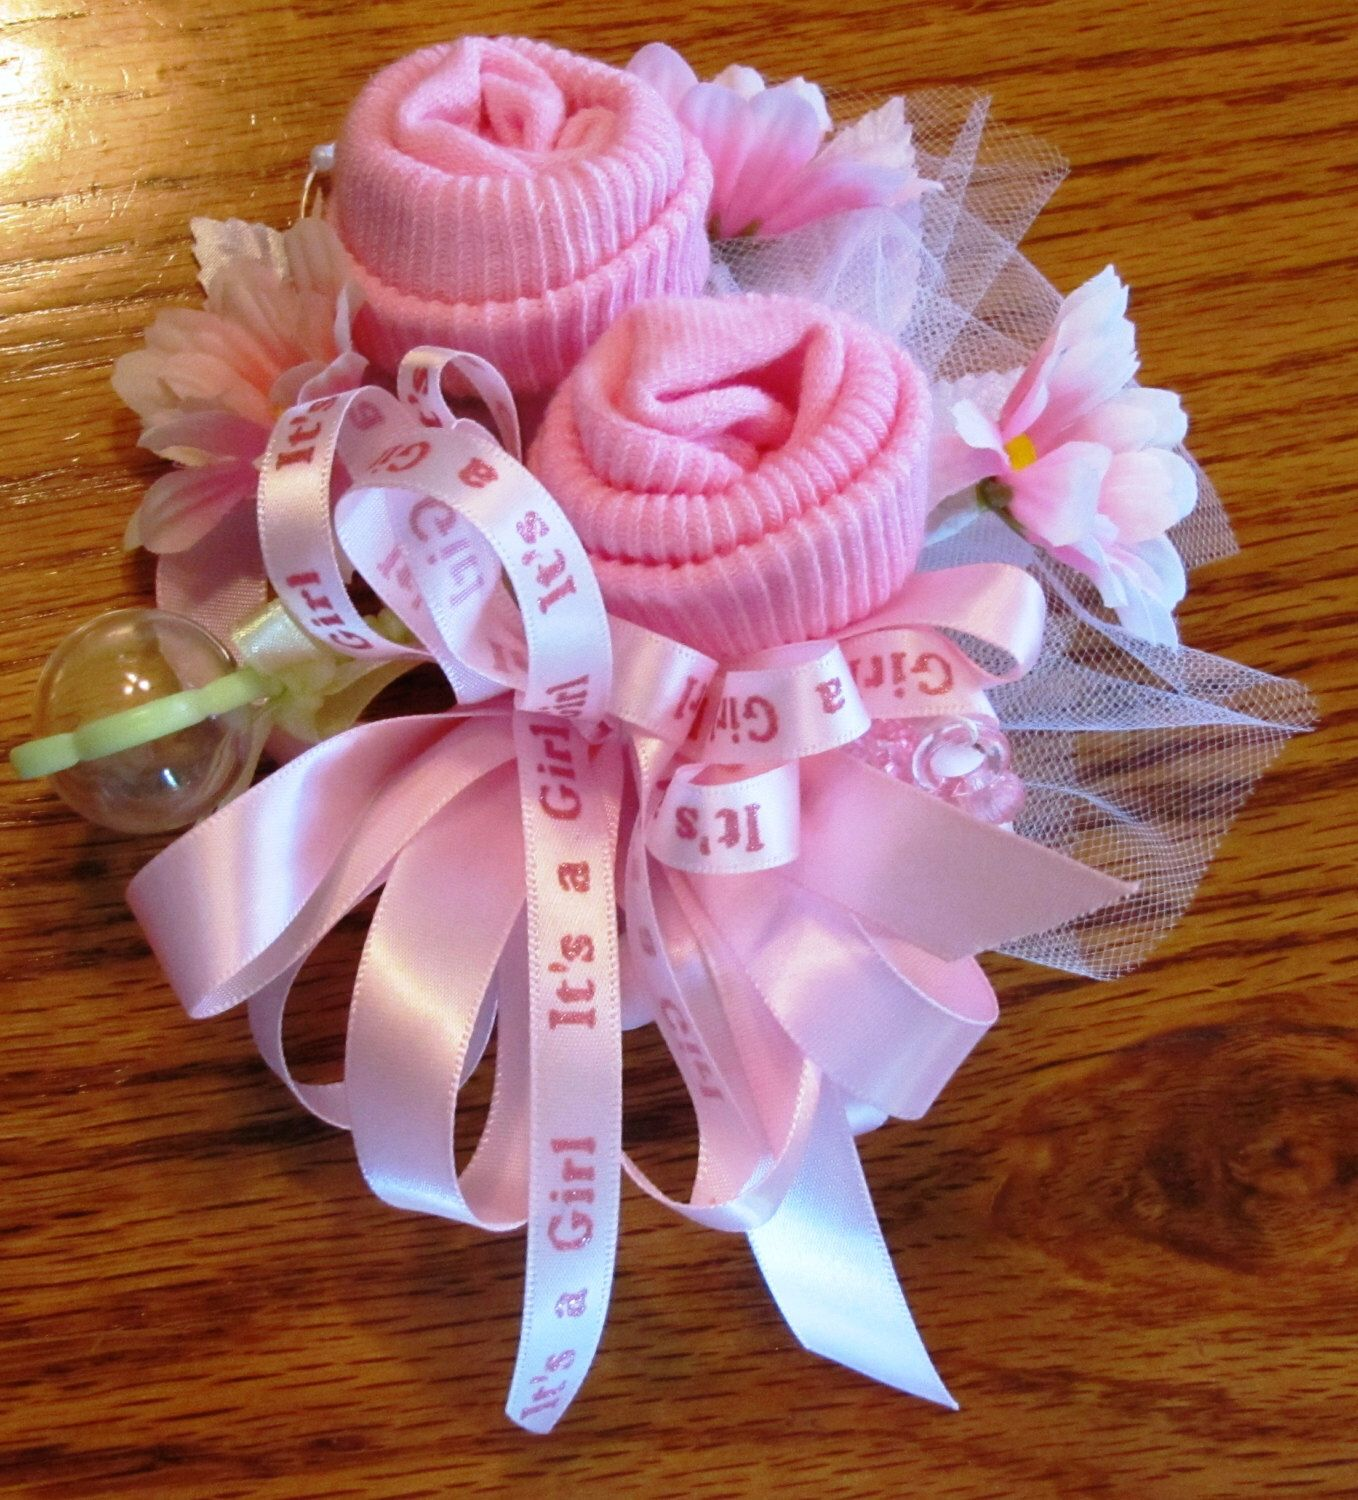 Baby Sock corsage, Handmade baby sock shower corsage by 2cutebaby on Etsy  https:/